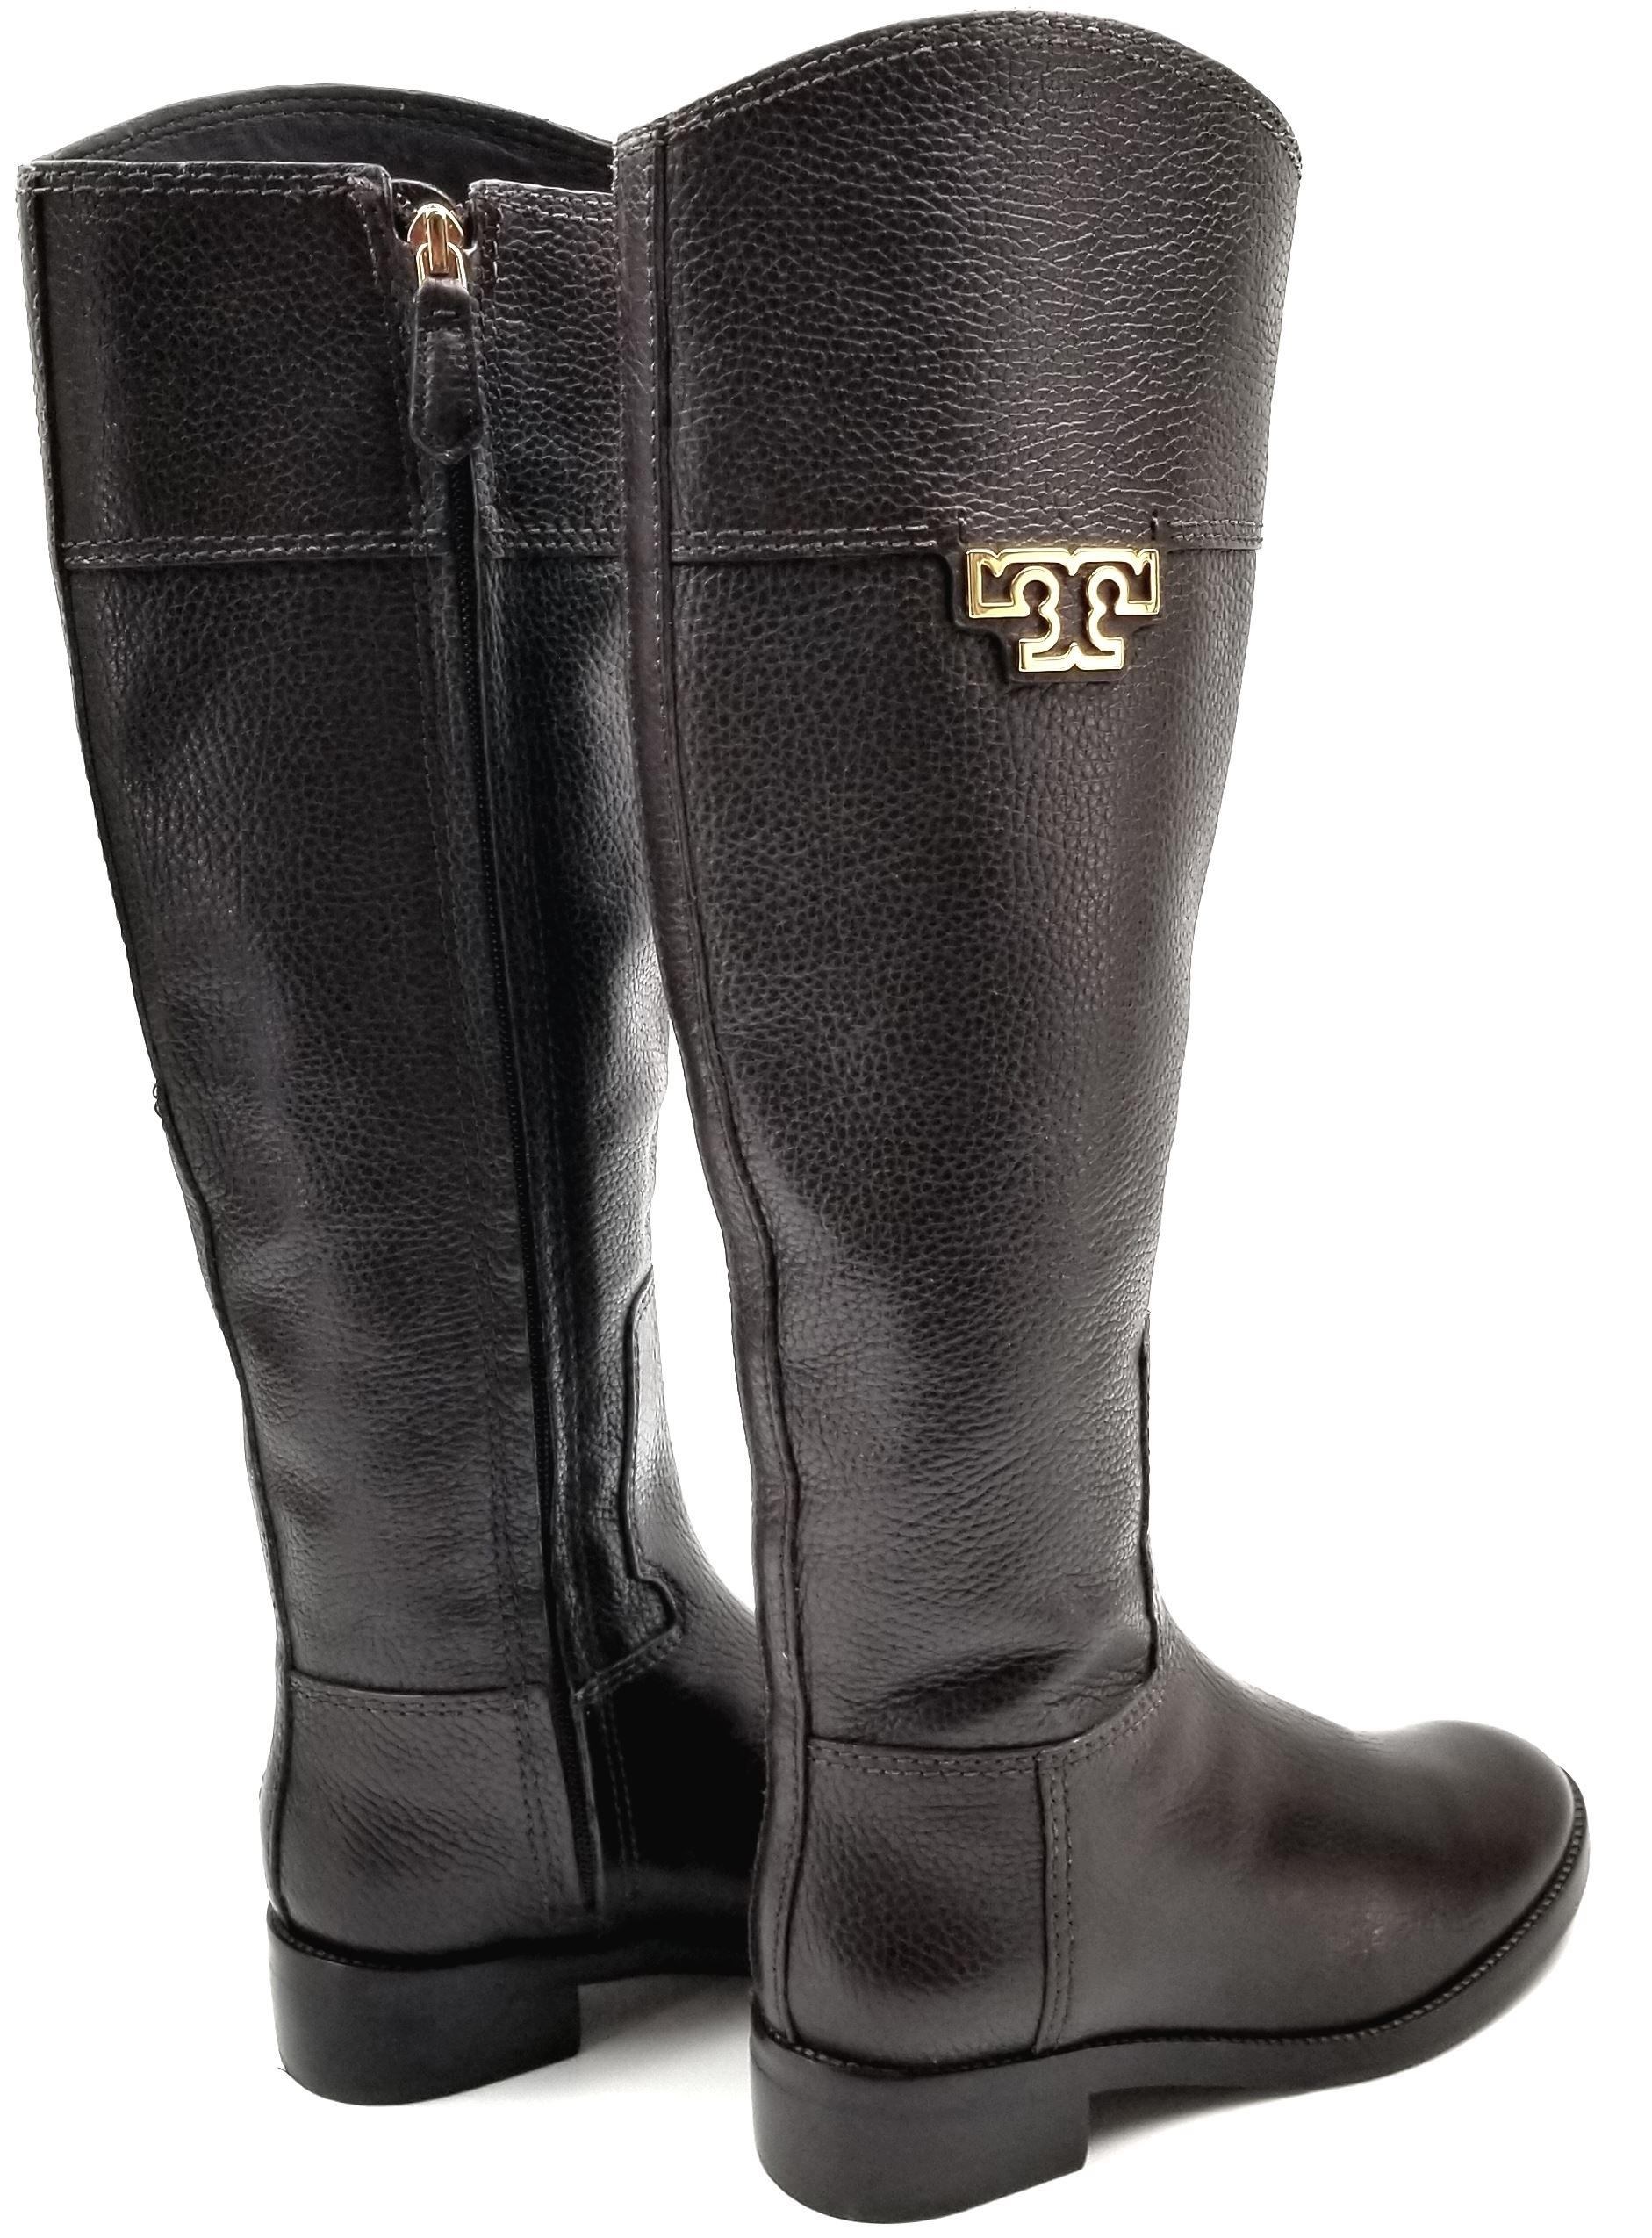 fbec4ff30b2c ... sandals b77c4 d2a54  reduced tory burch burnished leather medallion  logo riding brown boots. 123456789 07649 dfa56